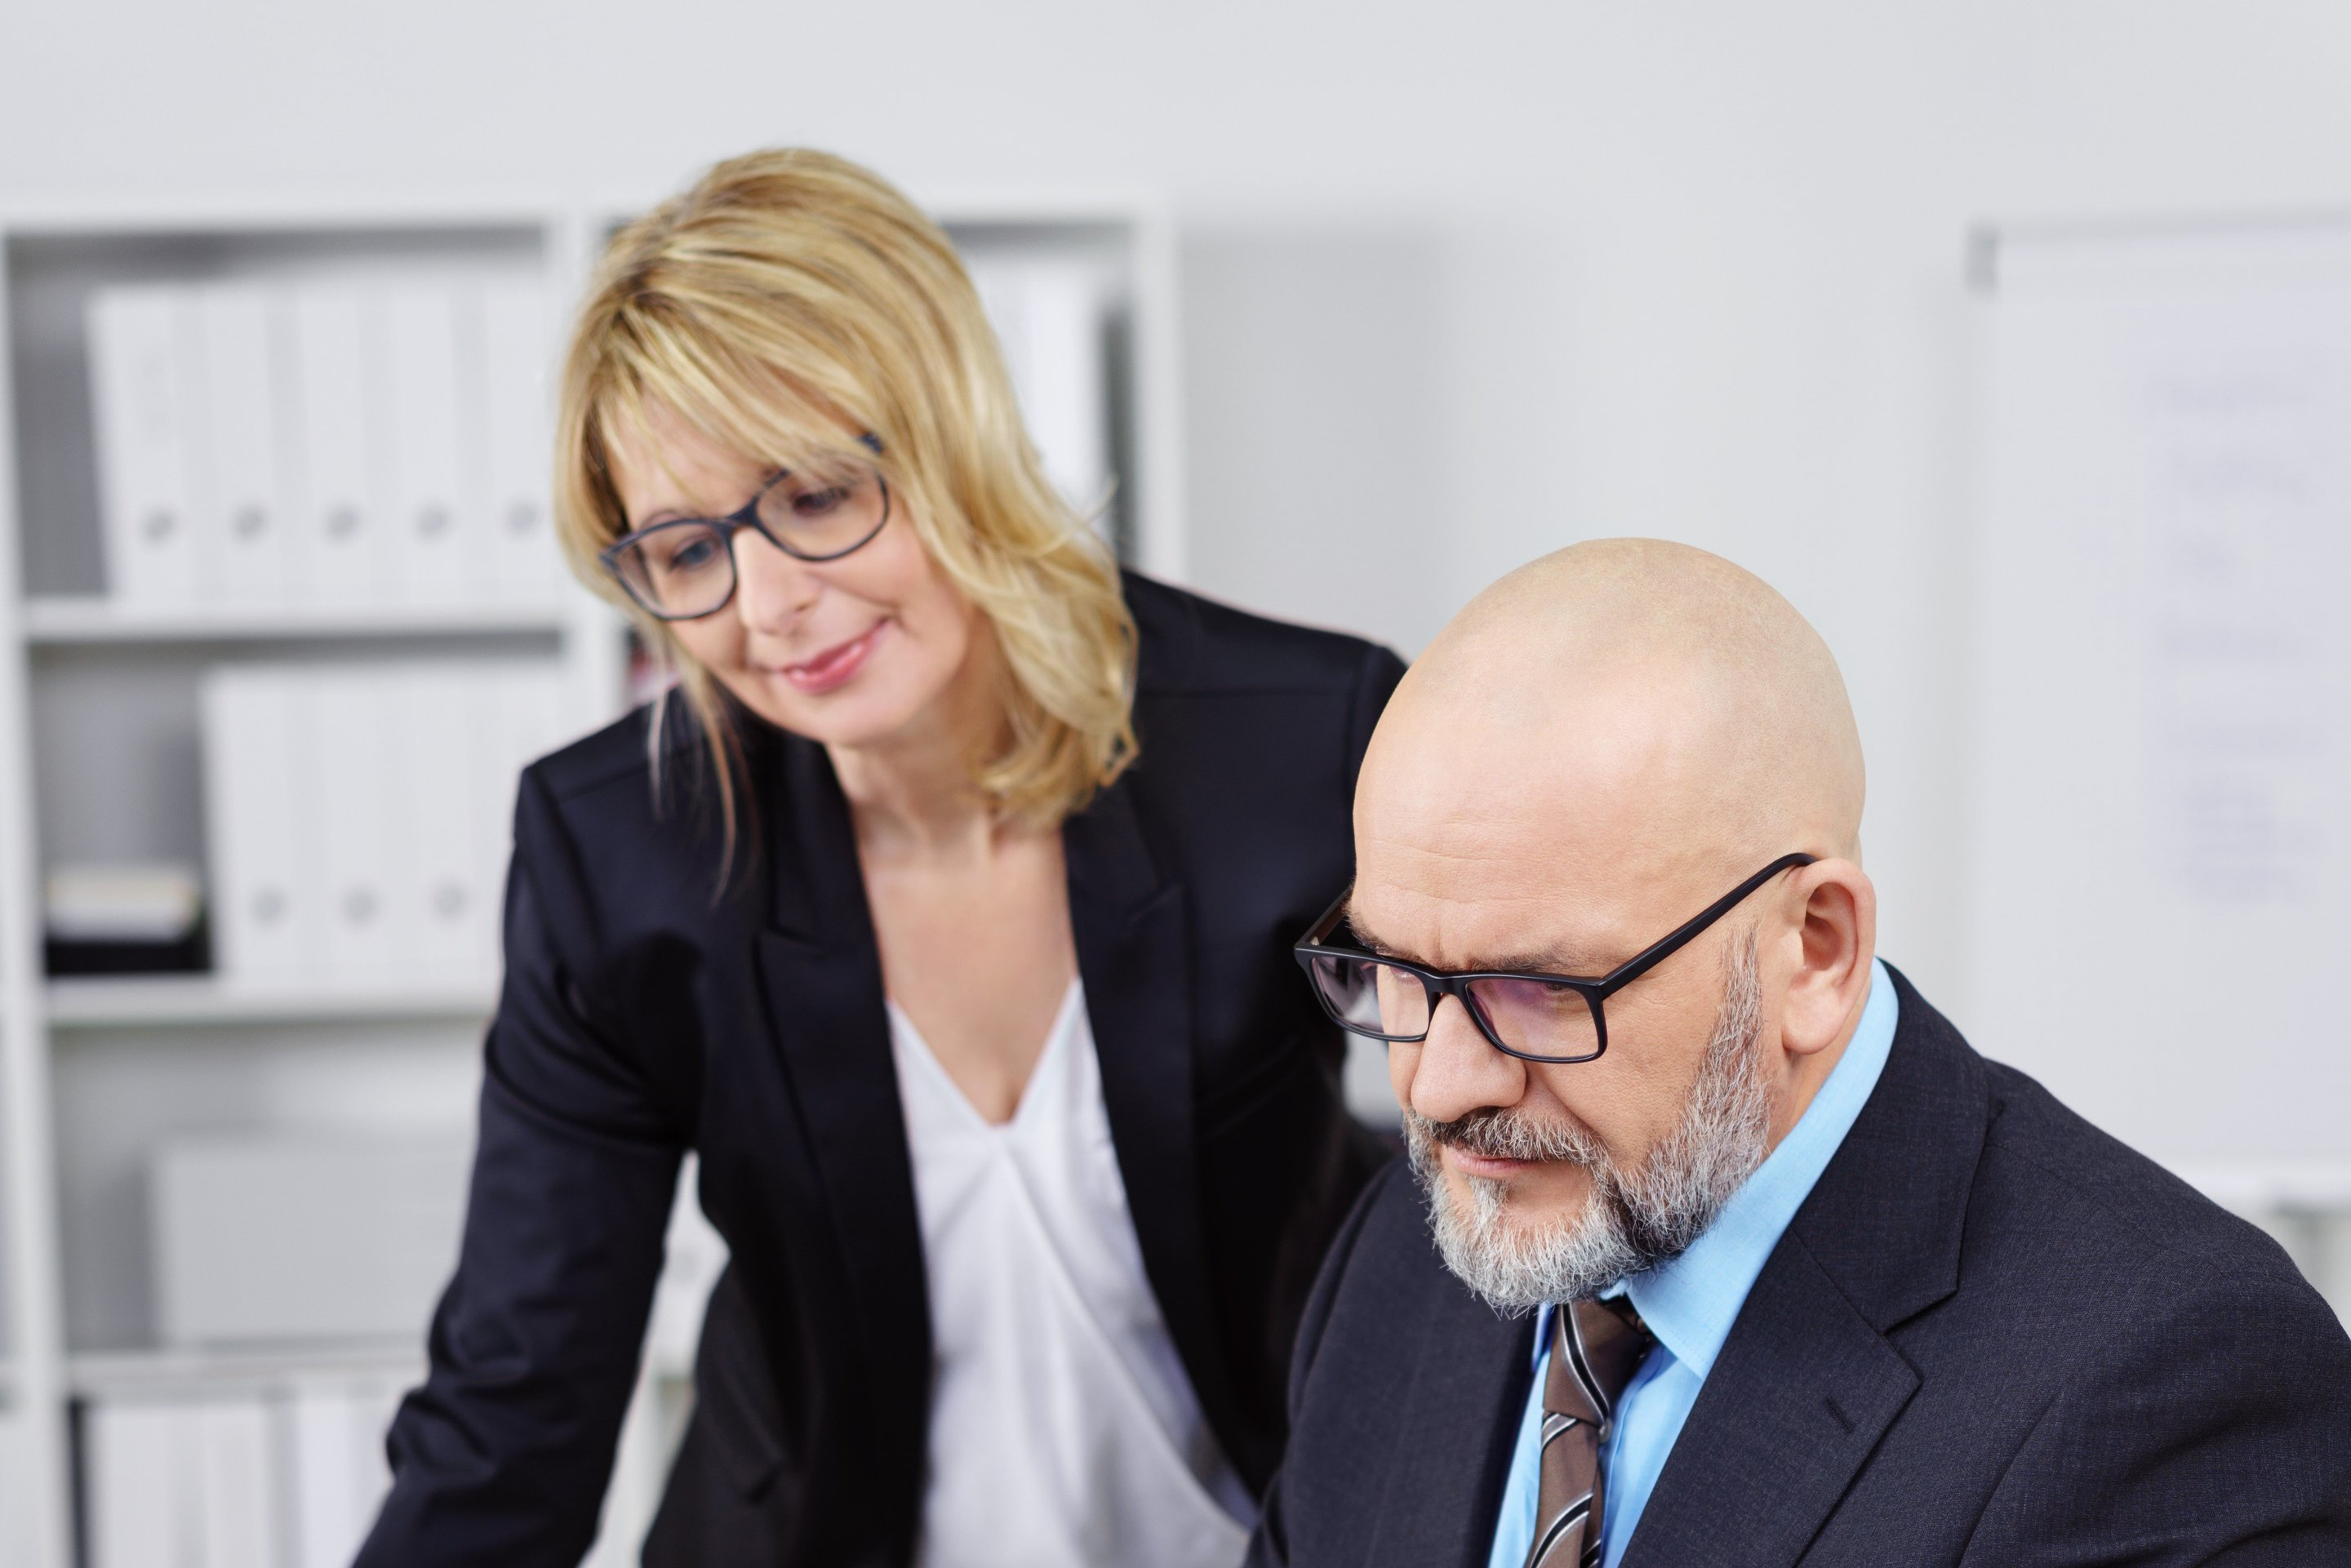 Addressing The Silent Taboo Of Menopause In The Workplace Addressing The Silent Taboo Of Menopause In The Workplace new pictures